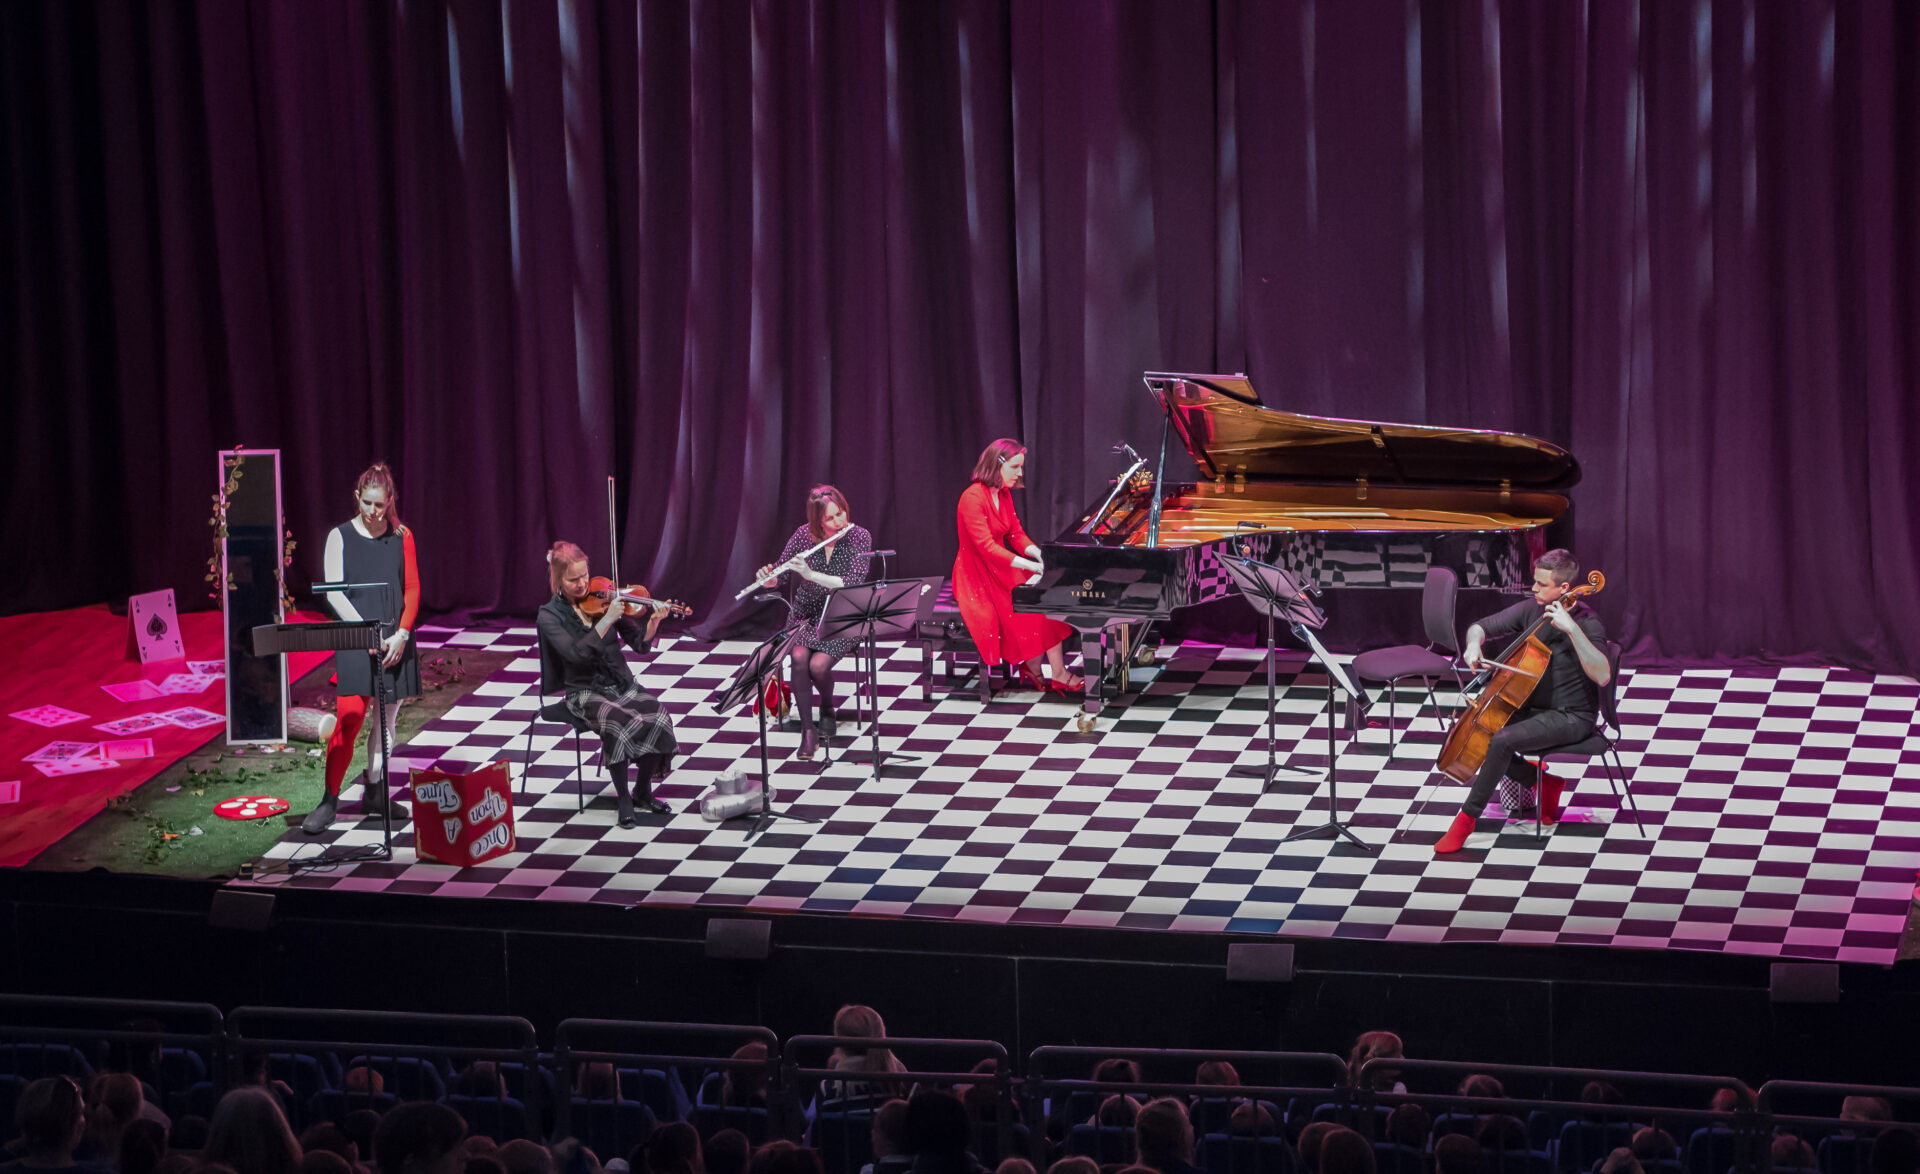 A group of musicians dressed in red and black play on a stage with a chequerboard-patterned floor